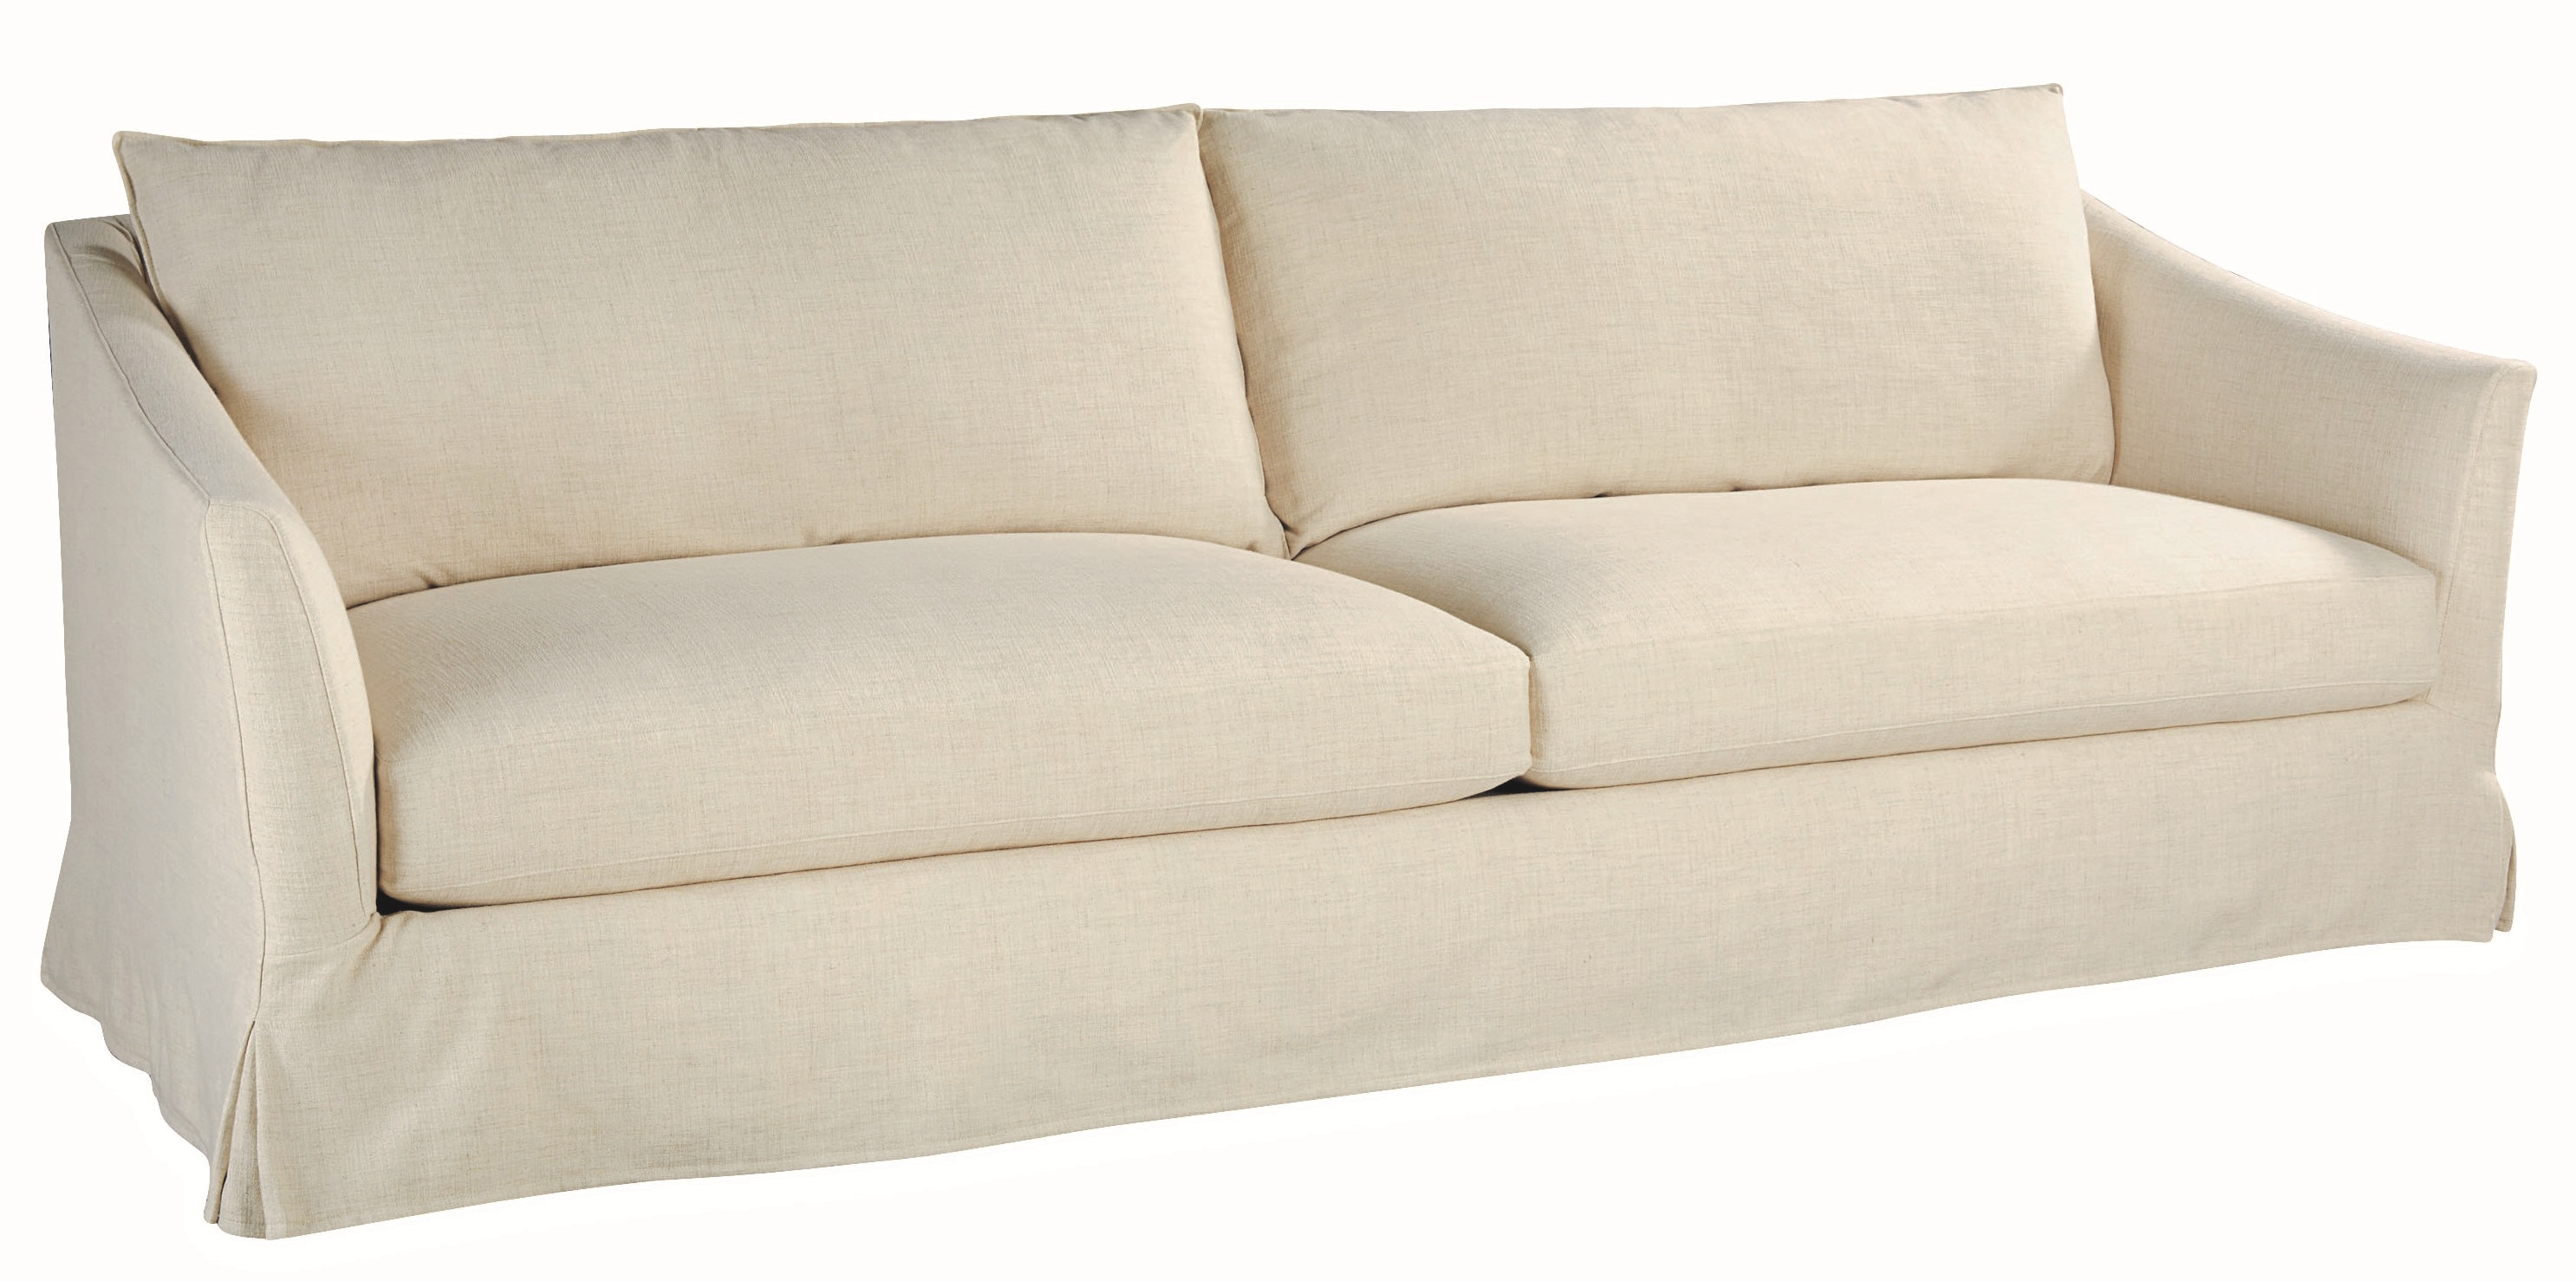 lee industries sofa prices las vegas living room slipcovered extra long